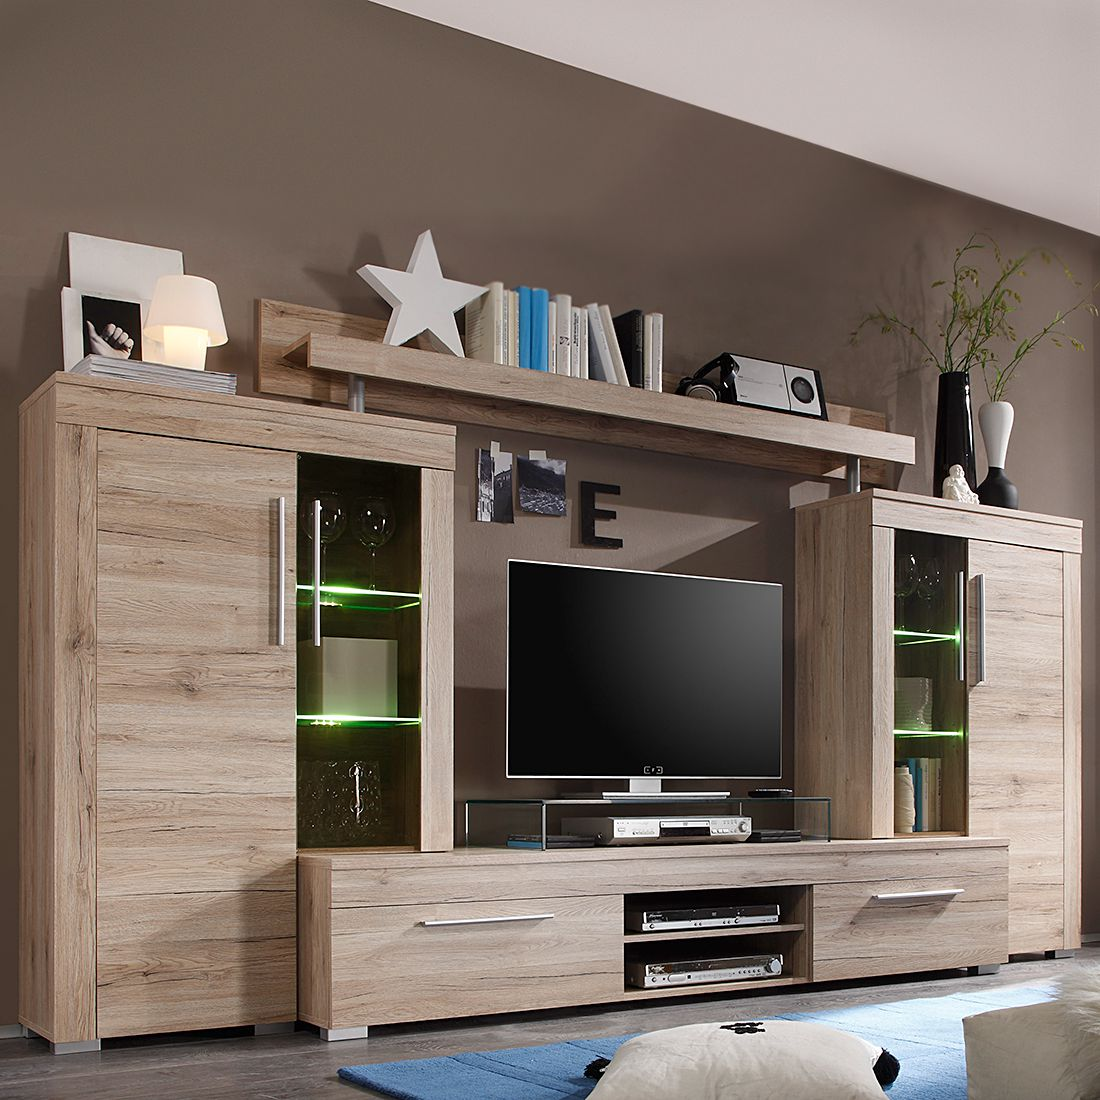 Meuble Tv Jahnke : Meuble Tv Cu Mr 90 Blanc Brillant Pictures To Pin On Pinterest